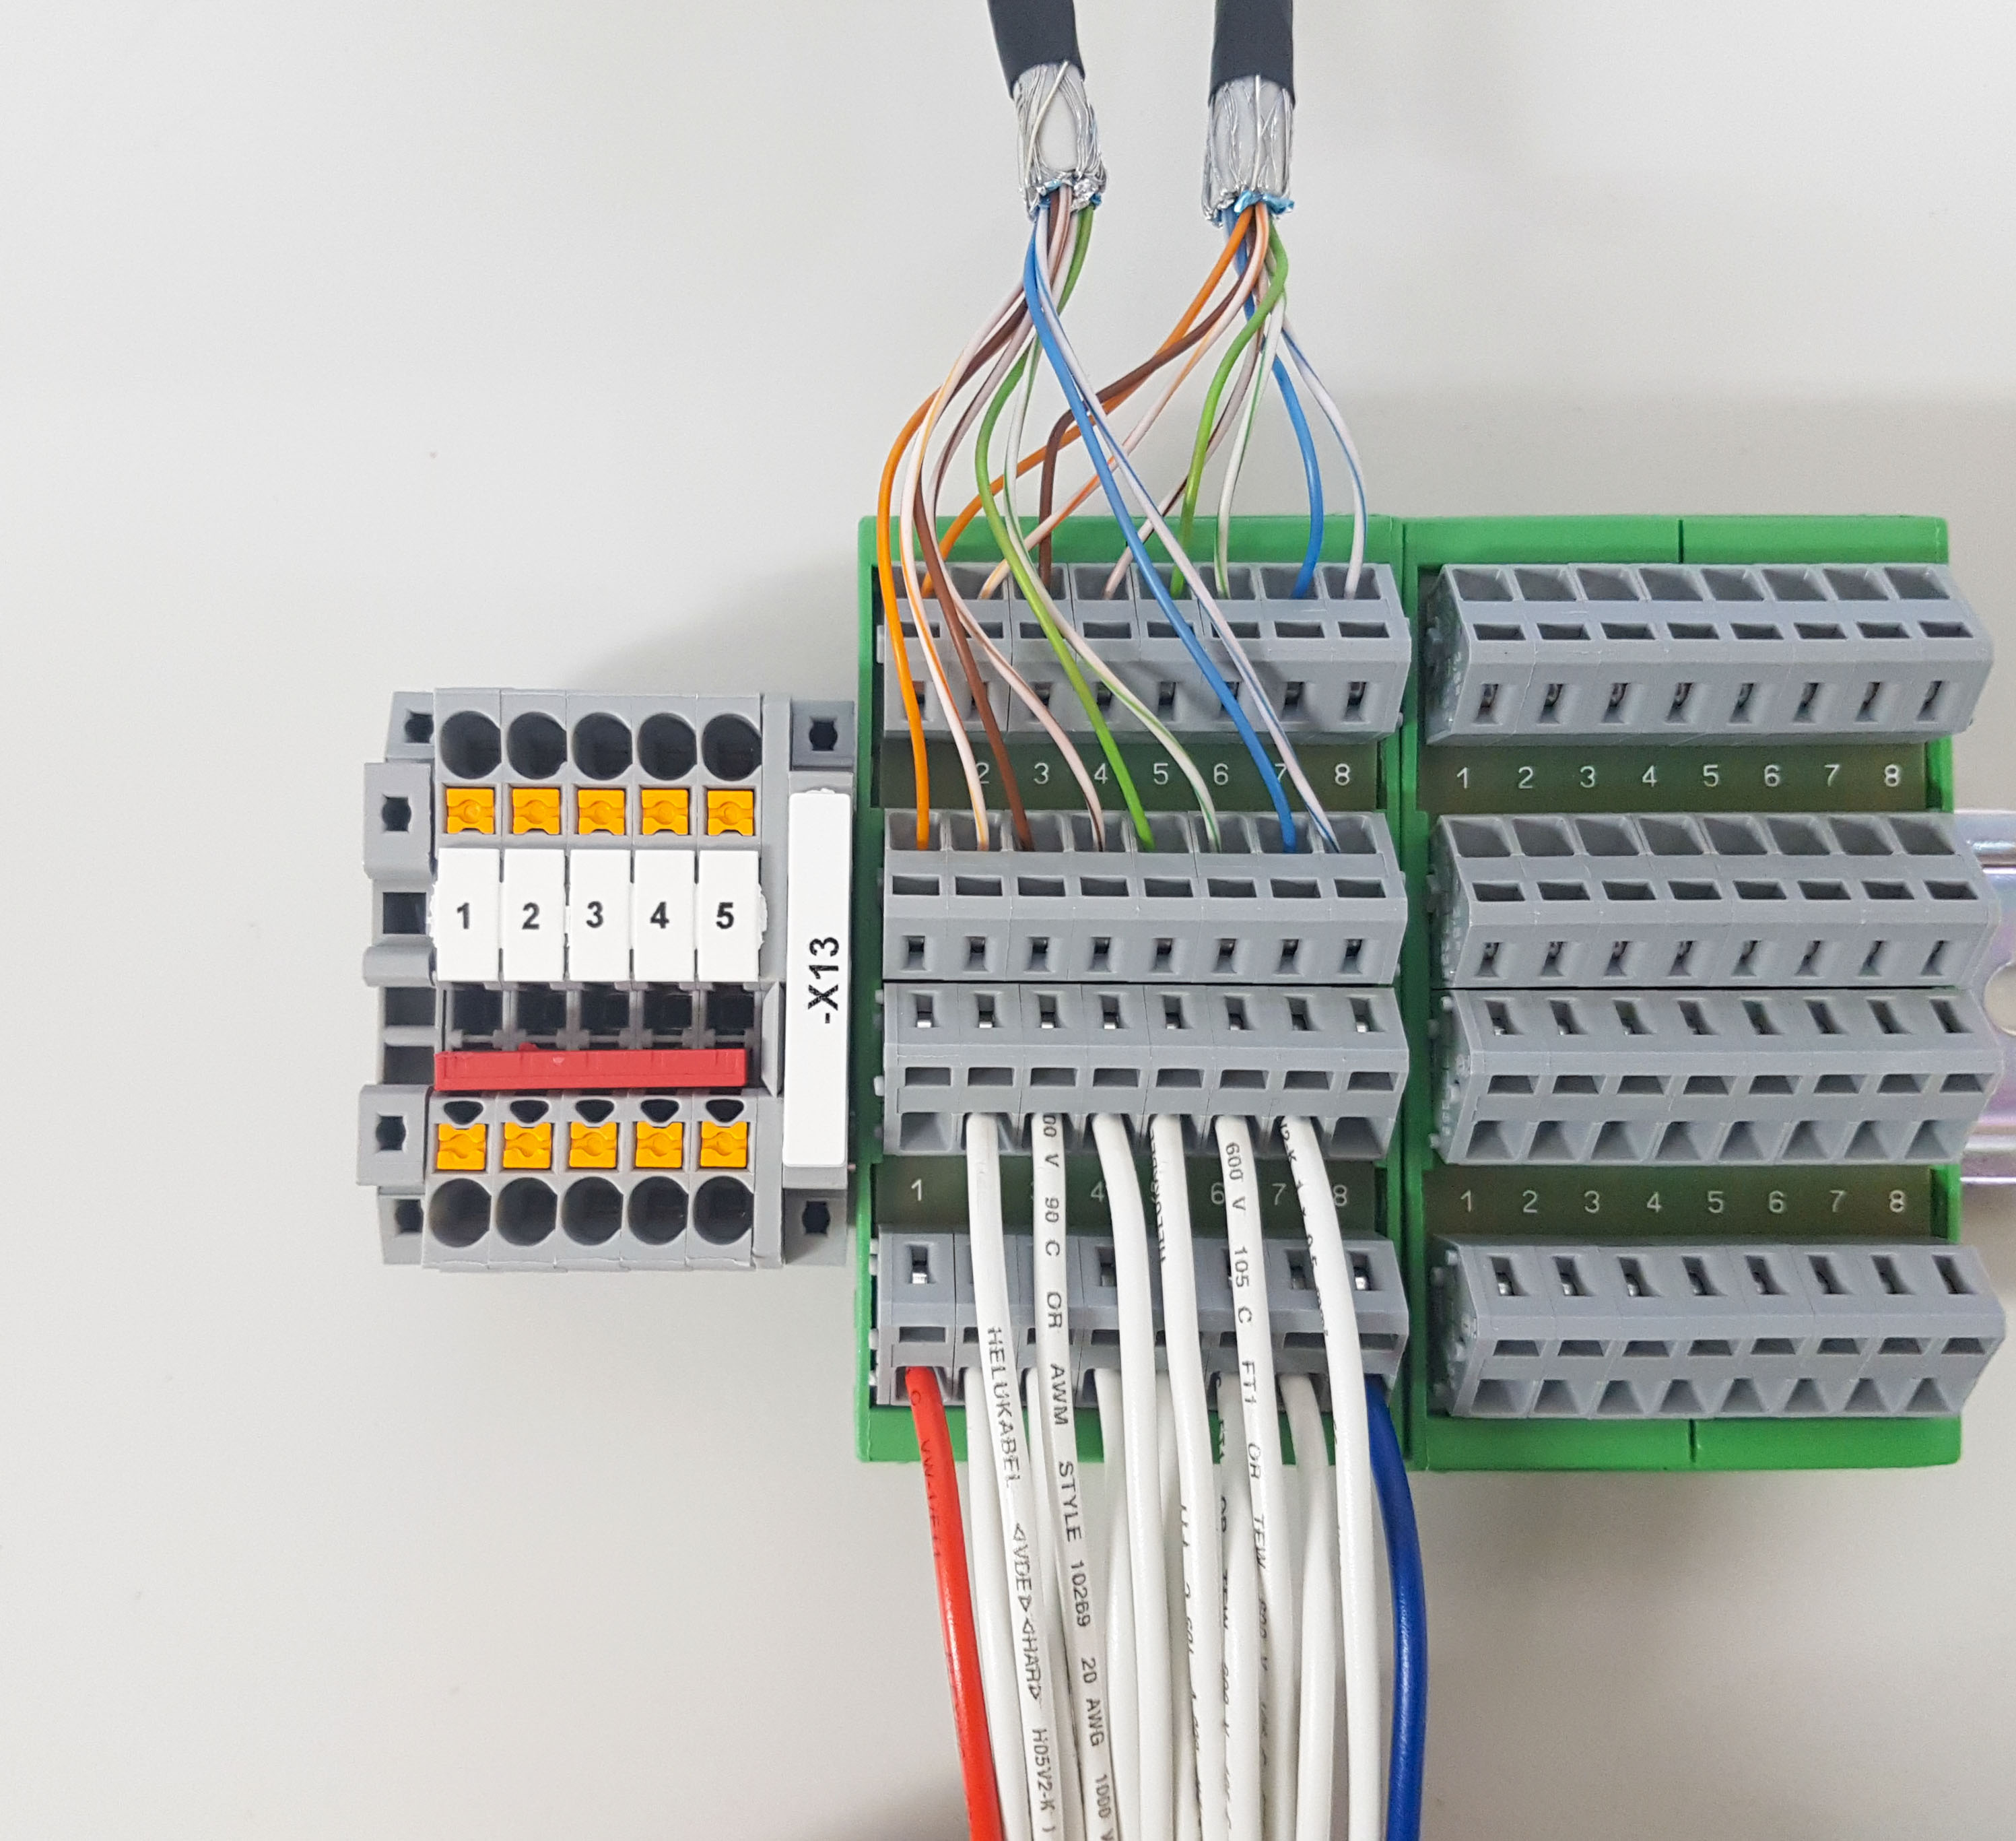 Terminal For Din Rail Loxone Smart Home House Wiring This Block Is Perfectly Suited The Removal Of Control Cabinets Eg A Controller Serves As An Interface In